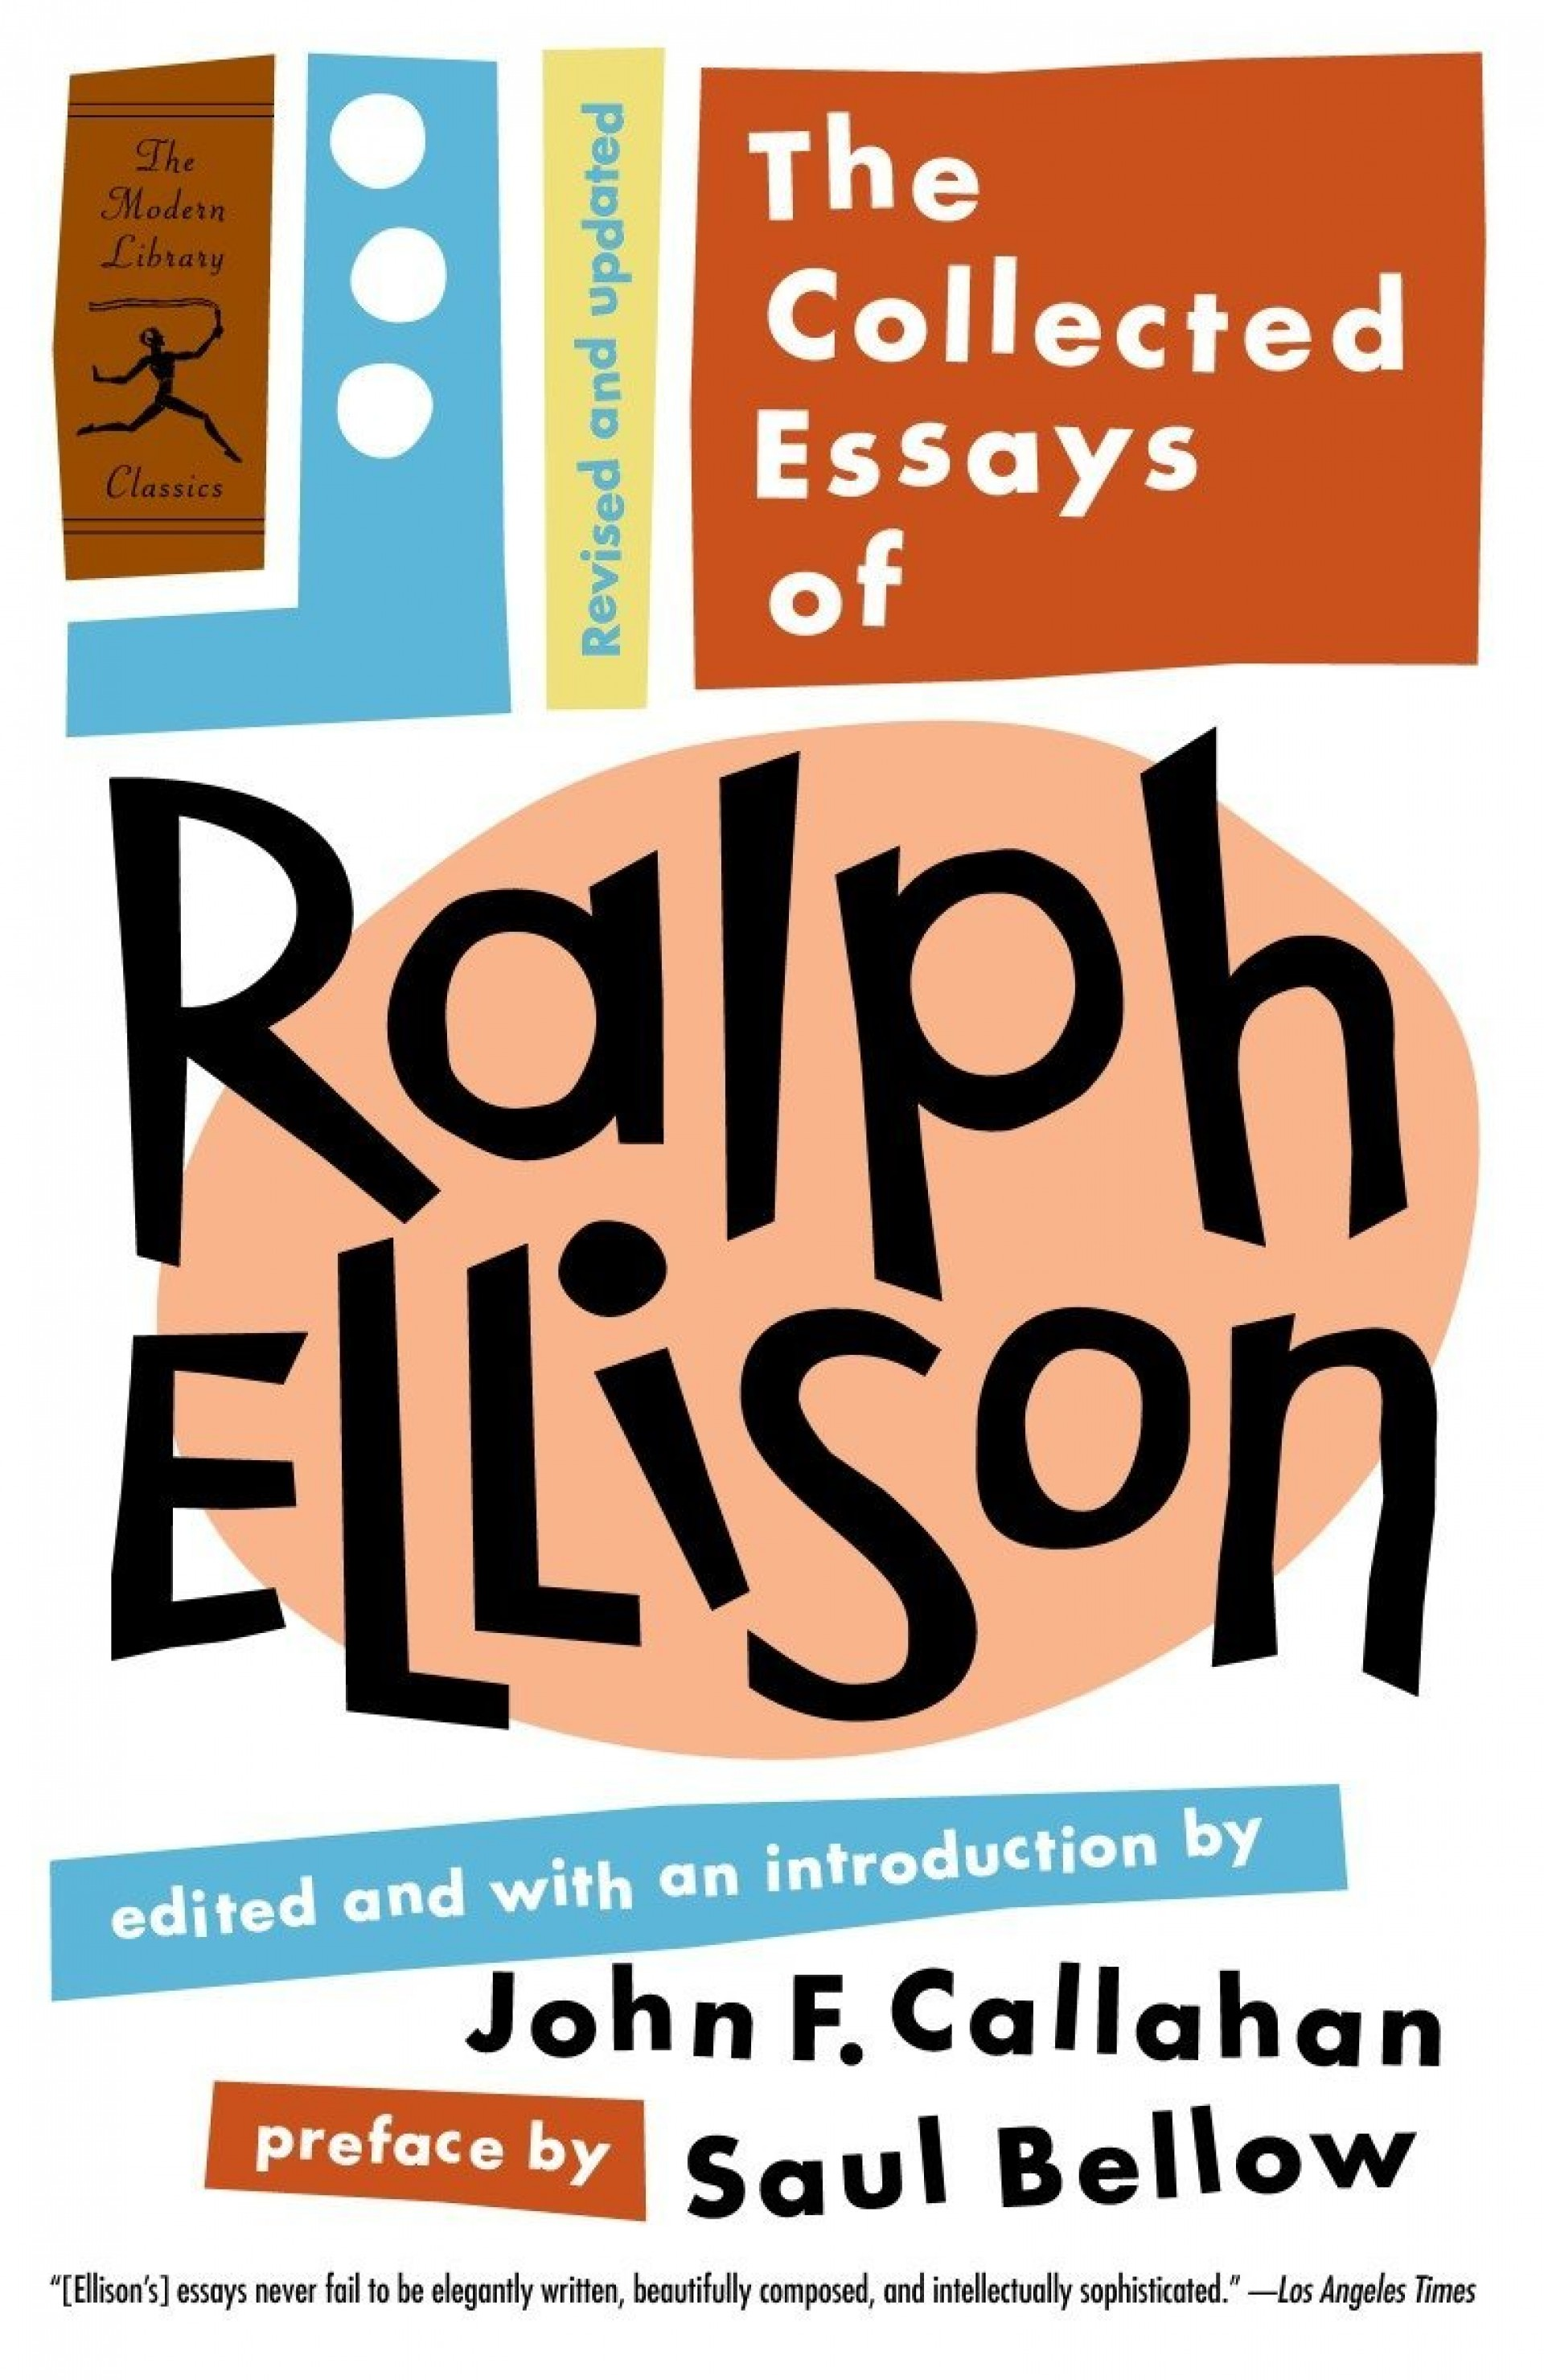 002 Collected Essays Essay Example Rare The Journalism And Letters Of George Orwell Volume 3 Ralph Ellison Aldous Huxley Pdf 1920